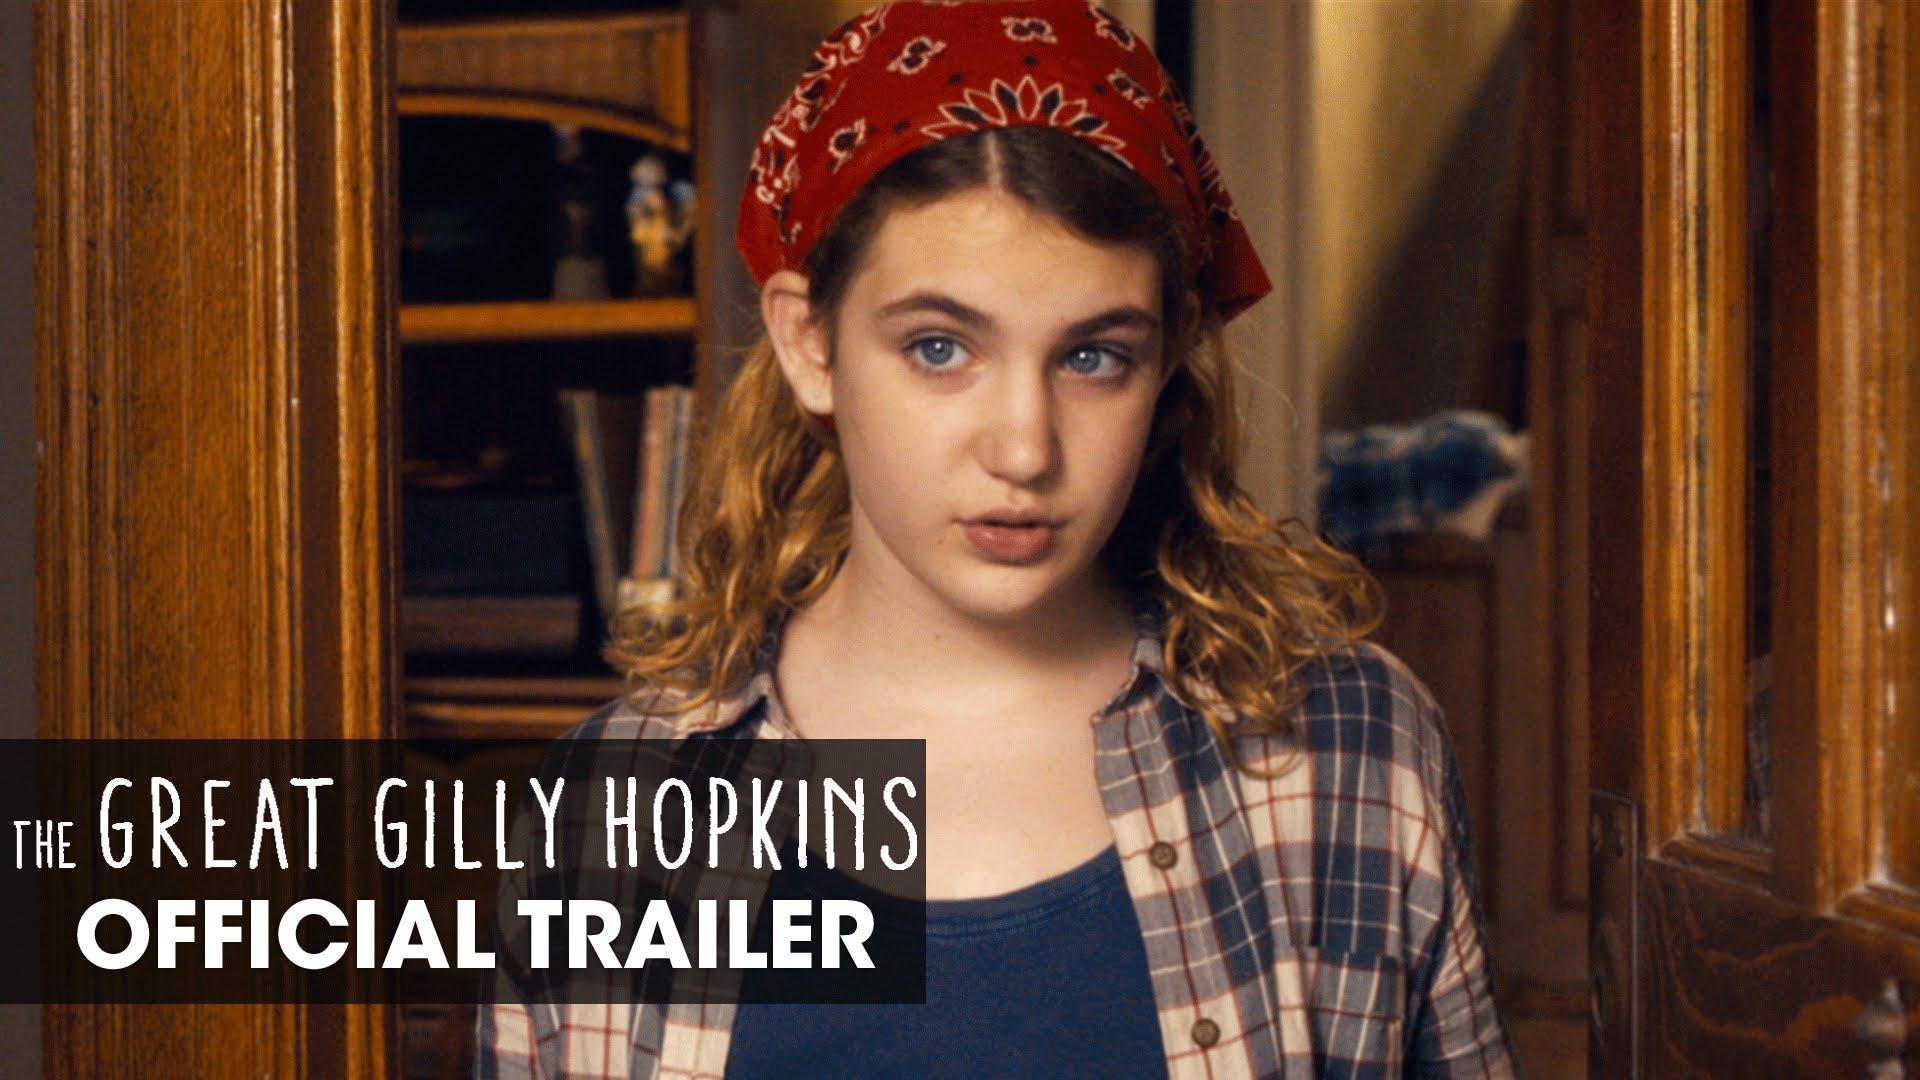 The Great Gilly Hopkins – Official Trailer